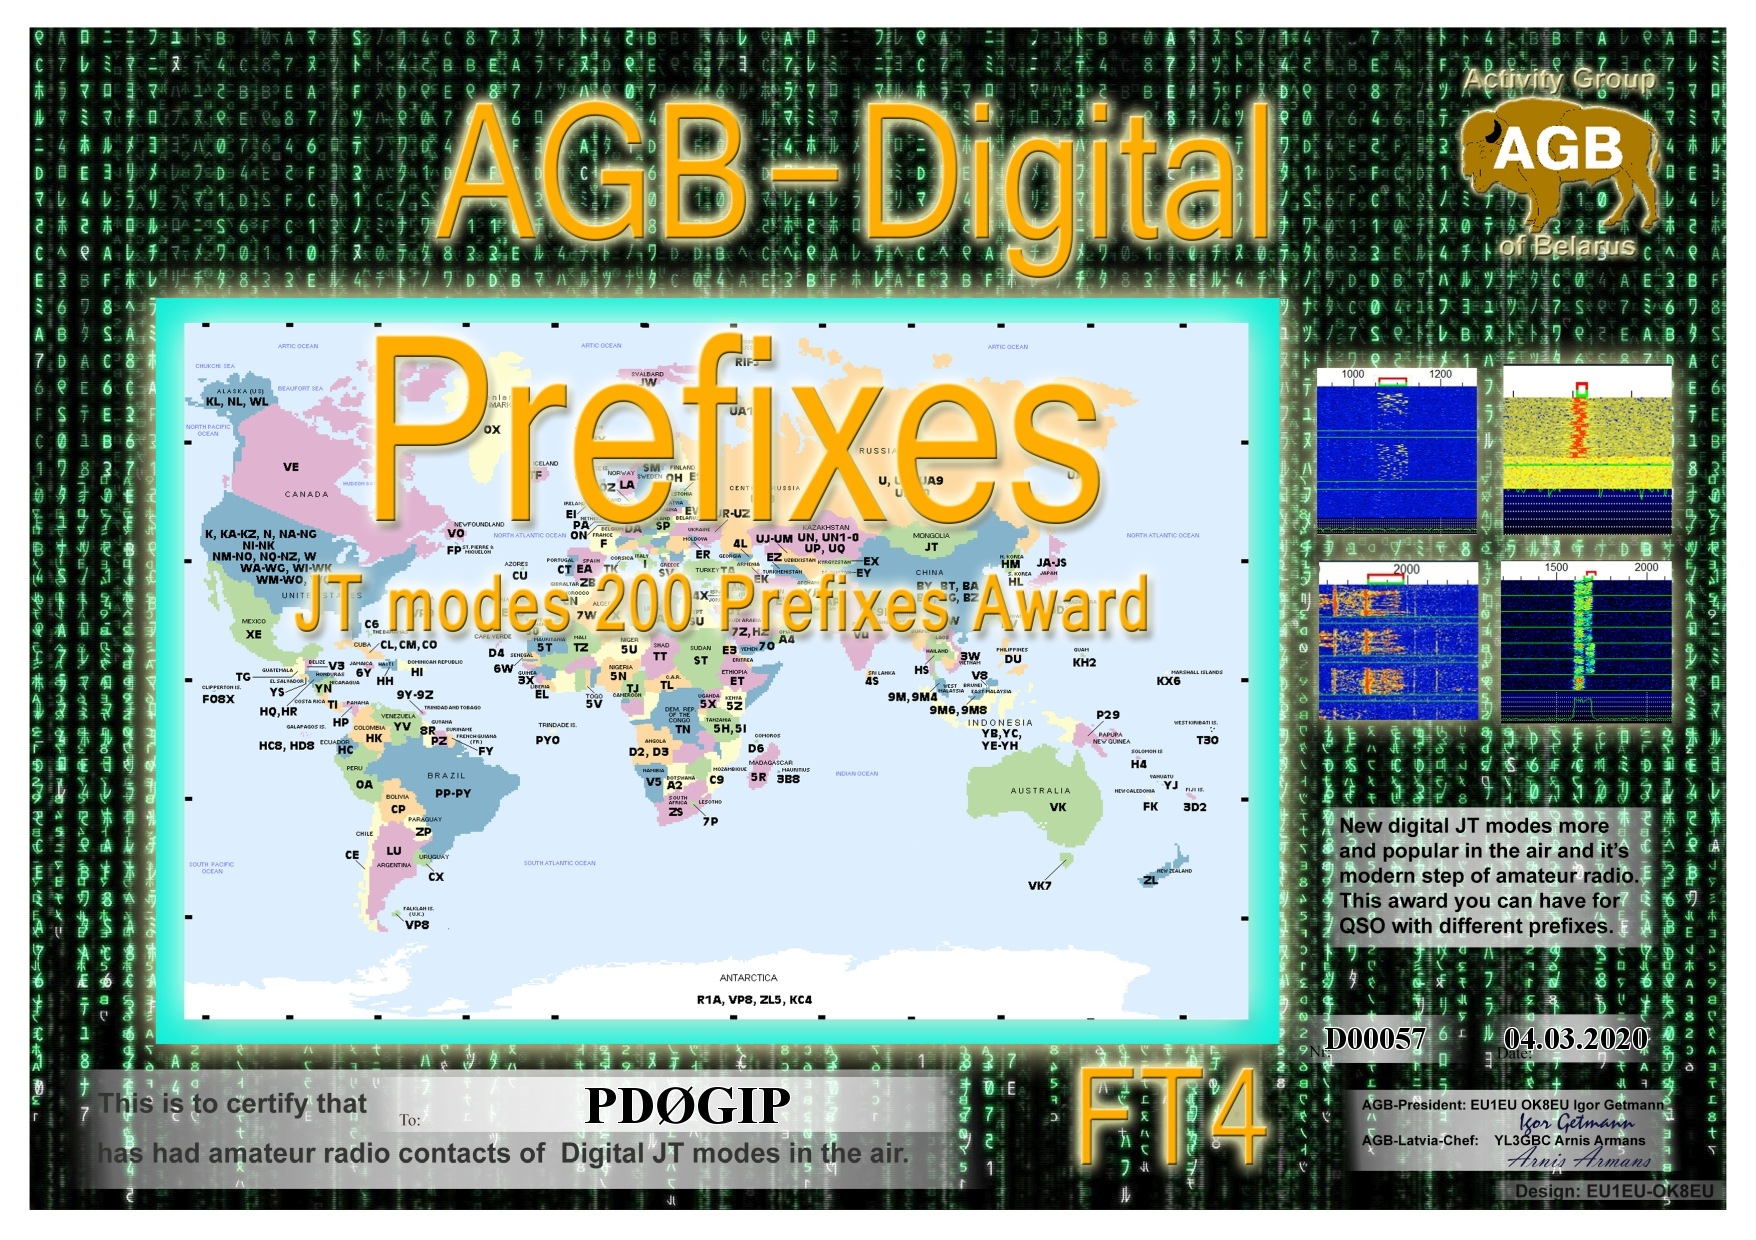 PD0GIP PREFIXES FT4 200 AGB